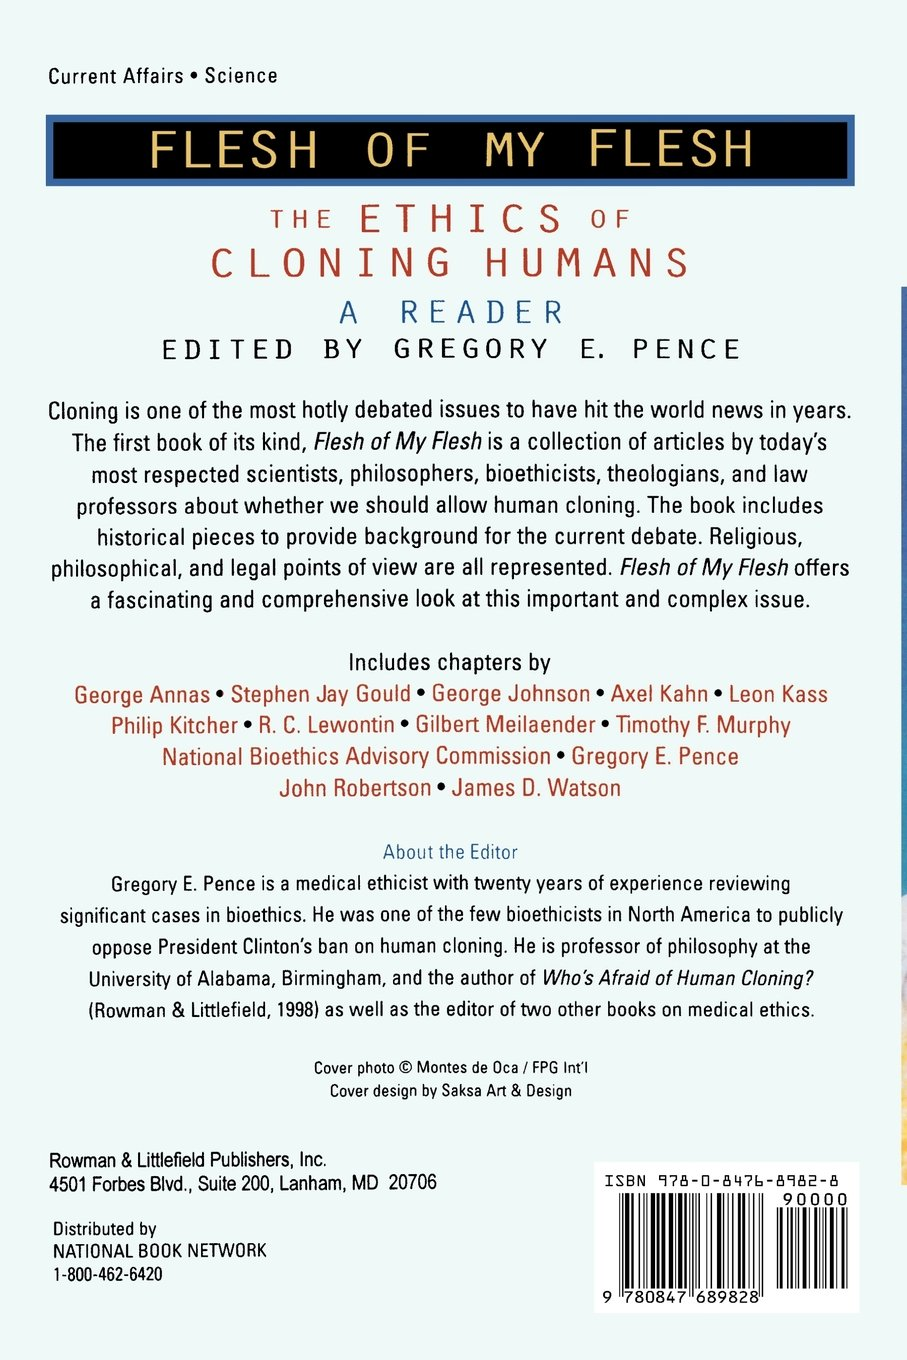 an overview of the science versus ethics and the plausibility for cloning of the human species Advantages and disadvantages of cloning knowing the advantages and disadvantages of cloning animals will enlighten activism, environment, and human rights.